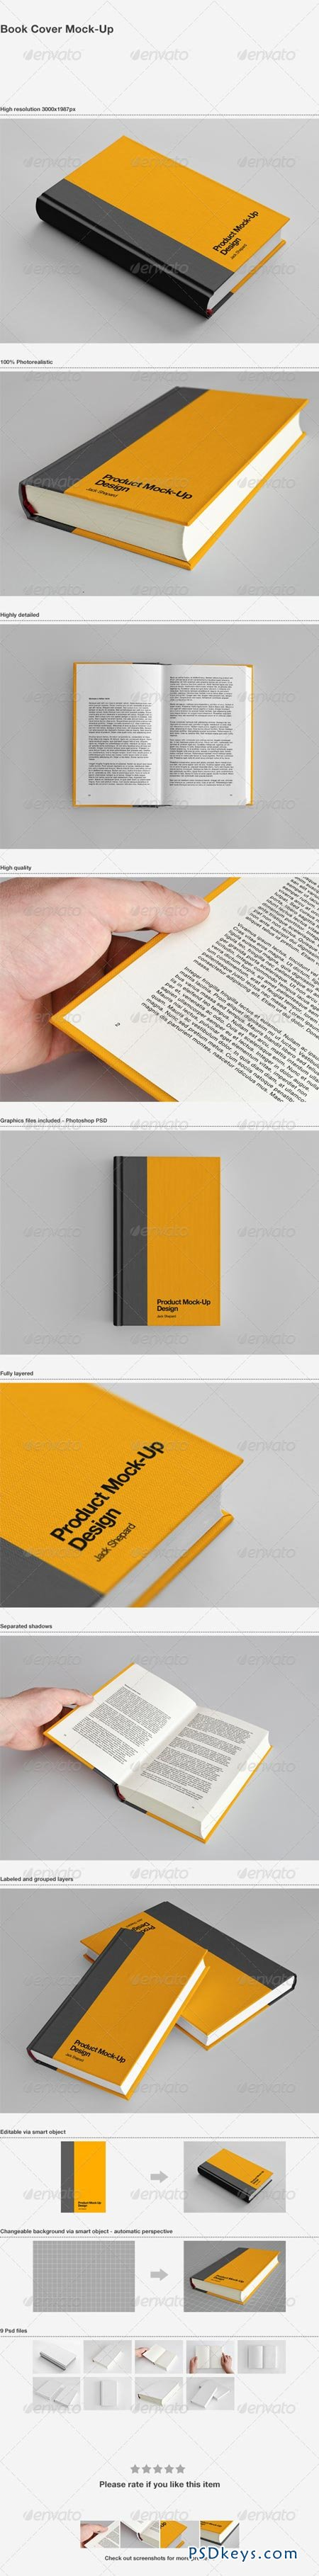 Book Cover Mock-Up 1687037